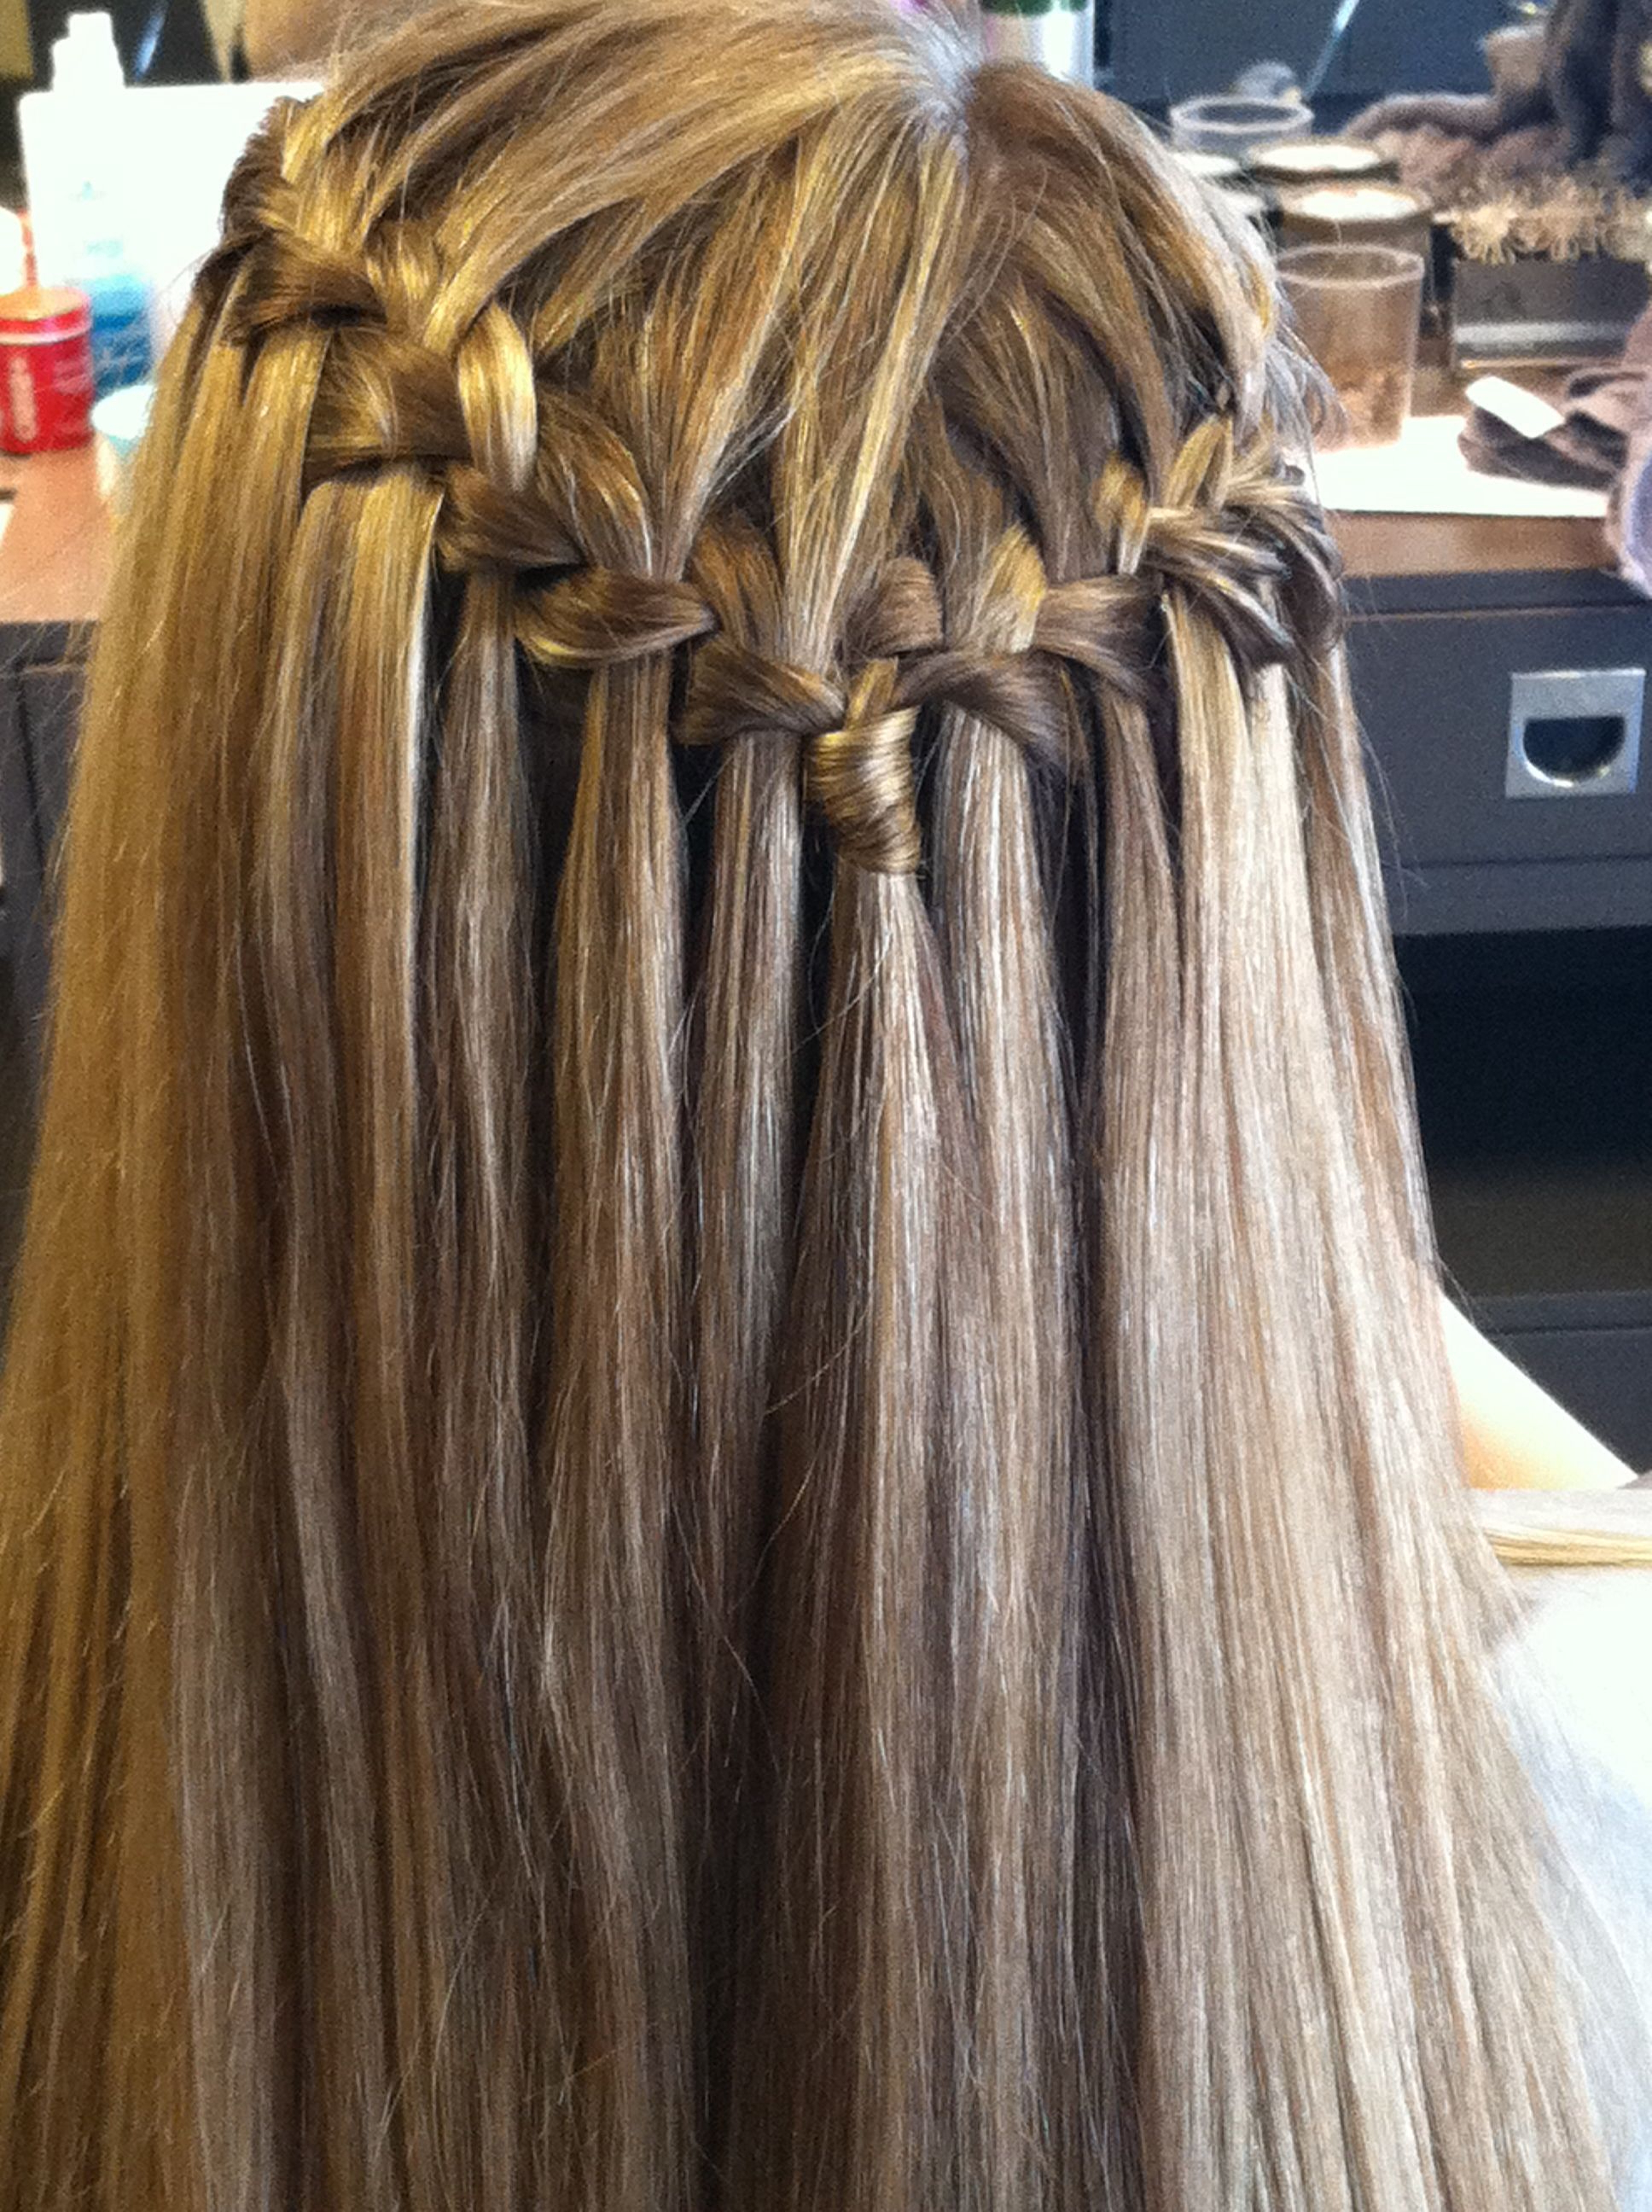 Newest High Waterfall Braided Hairstyles For Waterfall Braid With Straight Hairrachel (View 18 of 20)